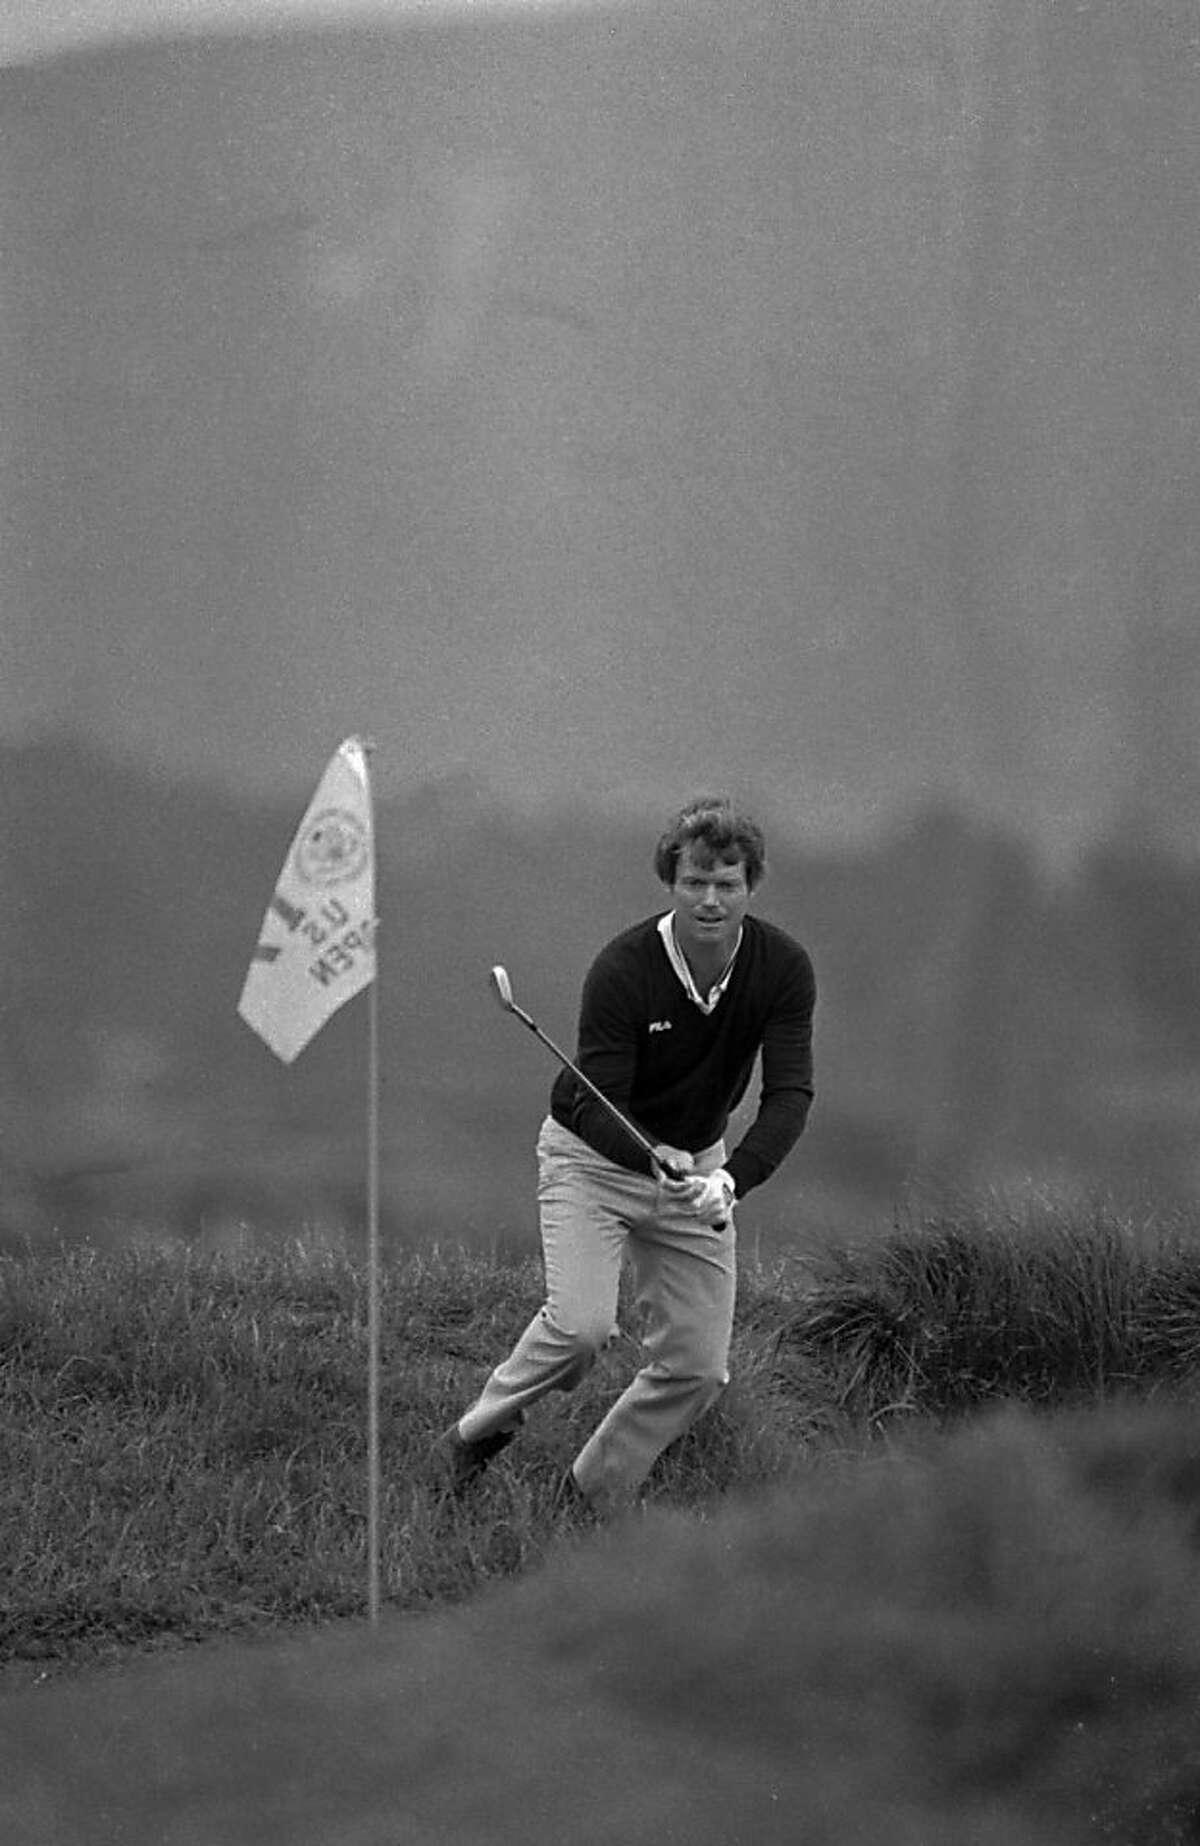 Tom Watson watches his ball go in the hole after hitting out of the rough to sink a birdie two on the 17th hole at Pebble Beach, Calif. during the U.S. Open on June 21, 1982. (AP PHOTO)